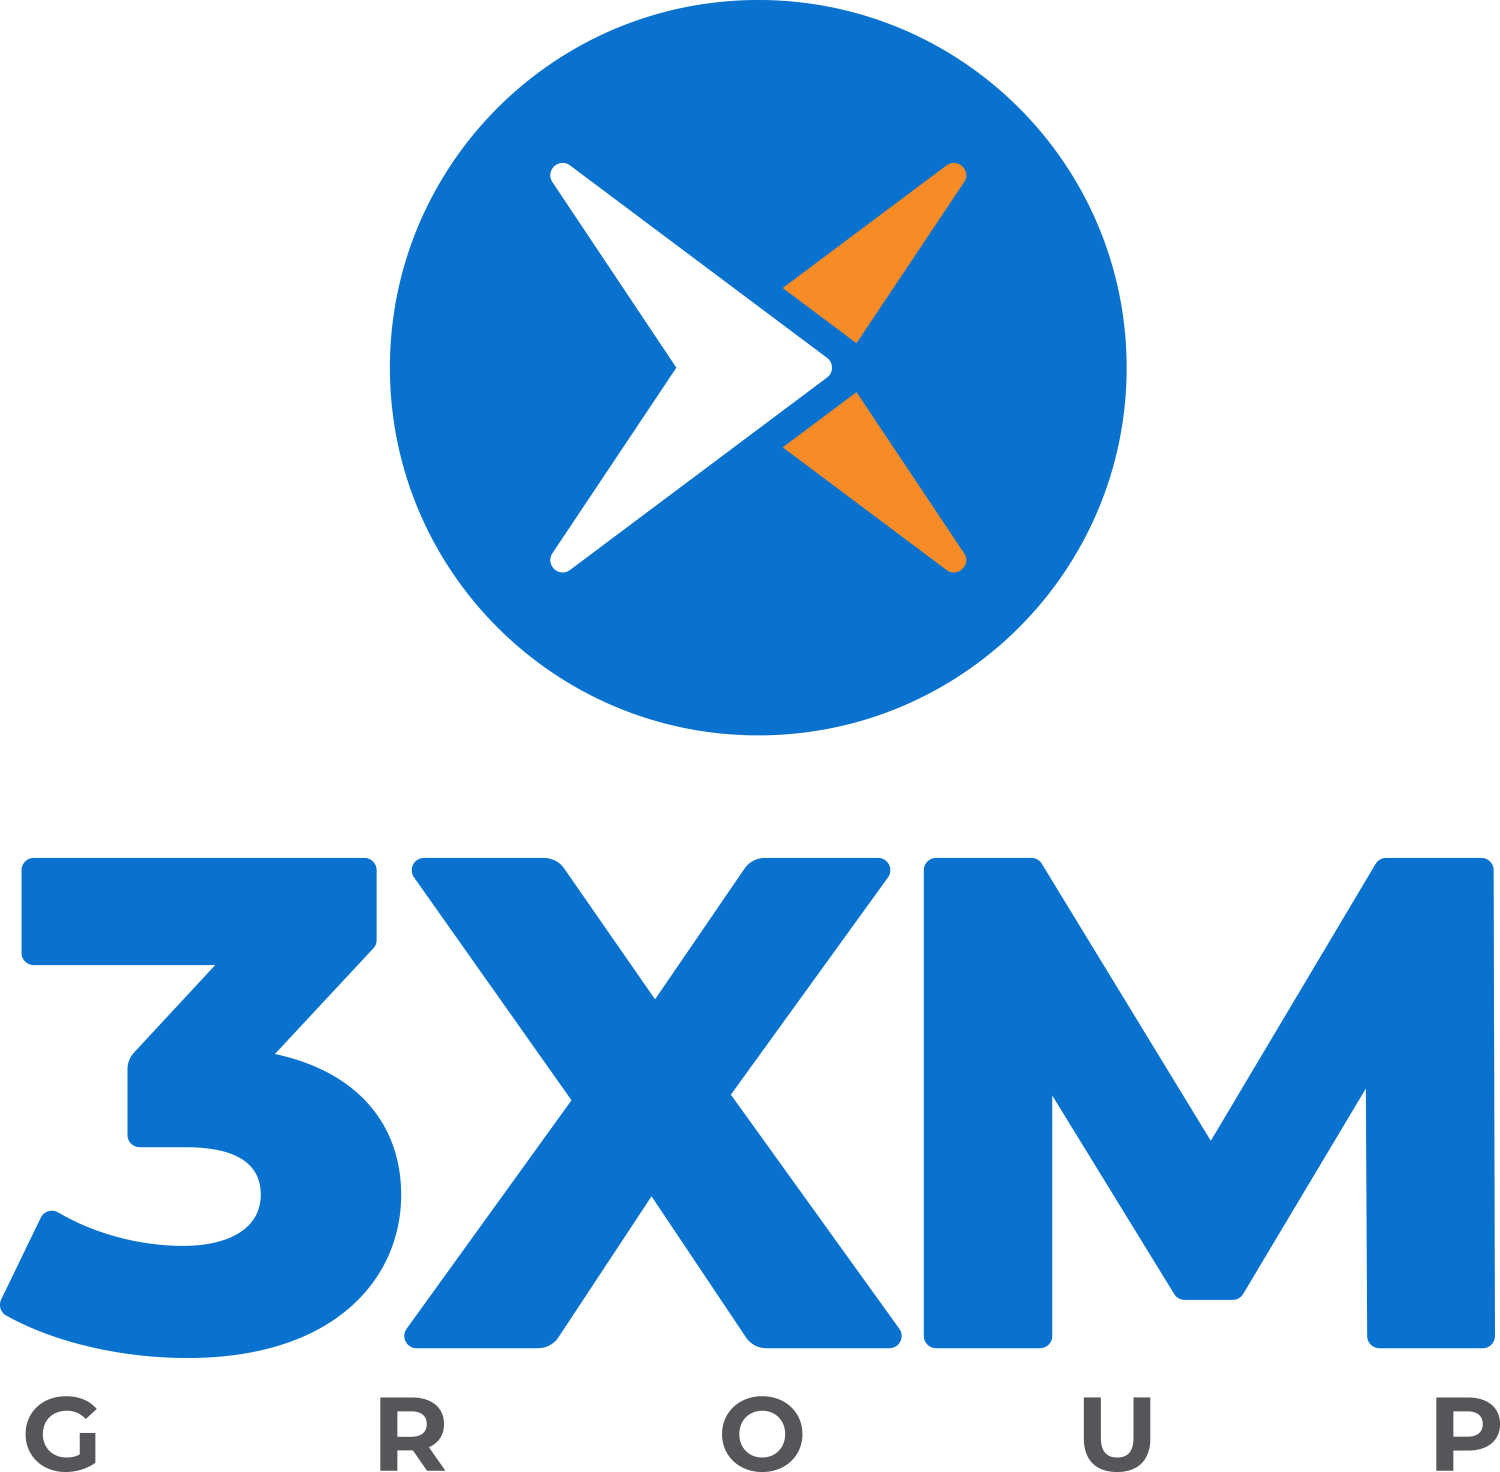 3XM Group logo